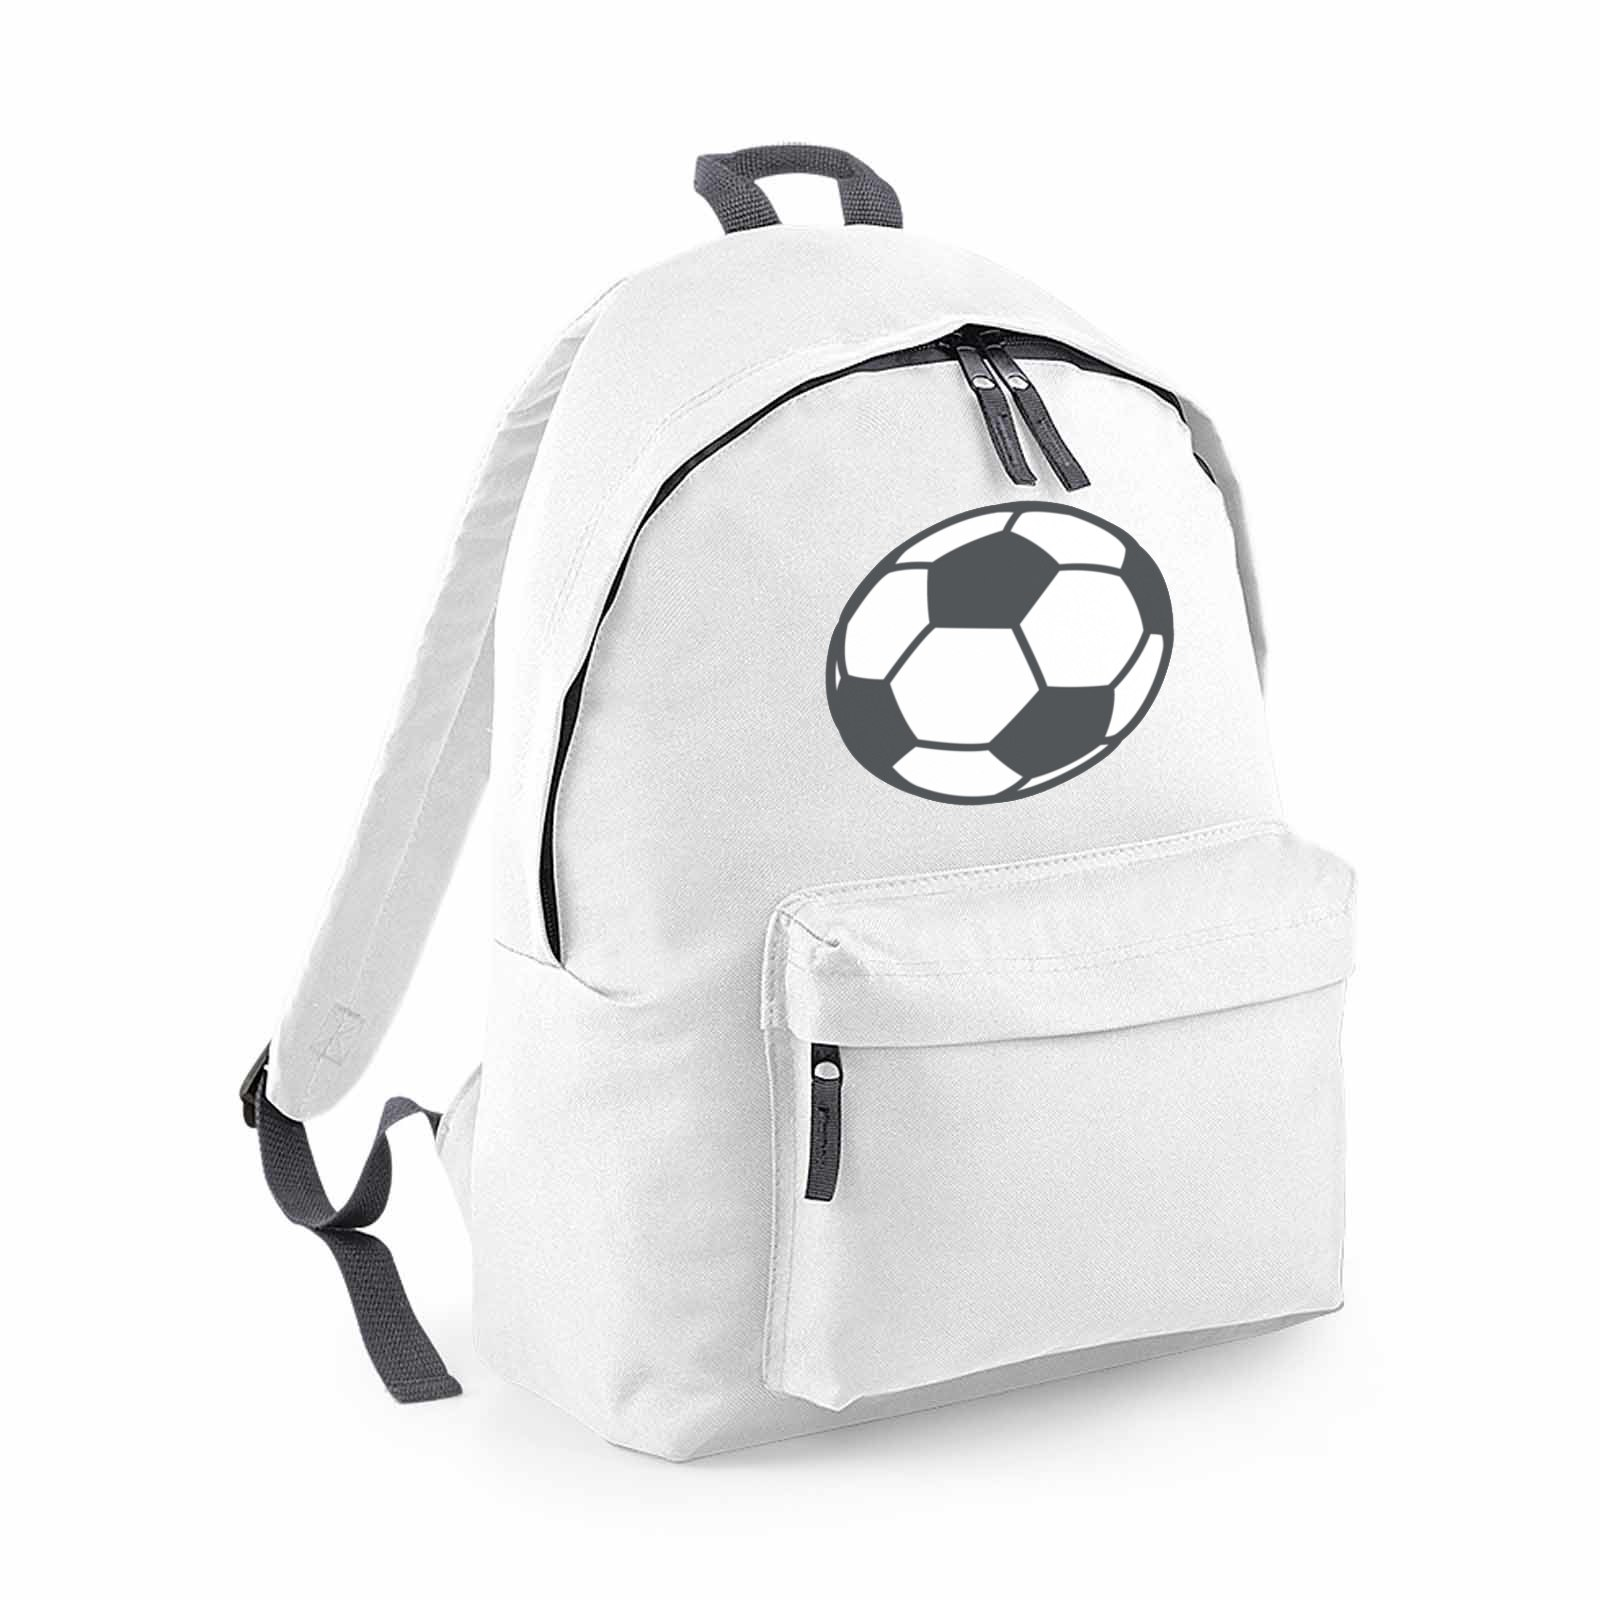 084824ffa4 Emoji Soccer Ball Fashion Backpack. Available in many colours. Free ...